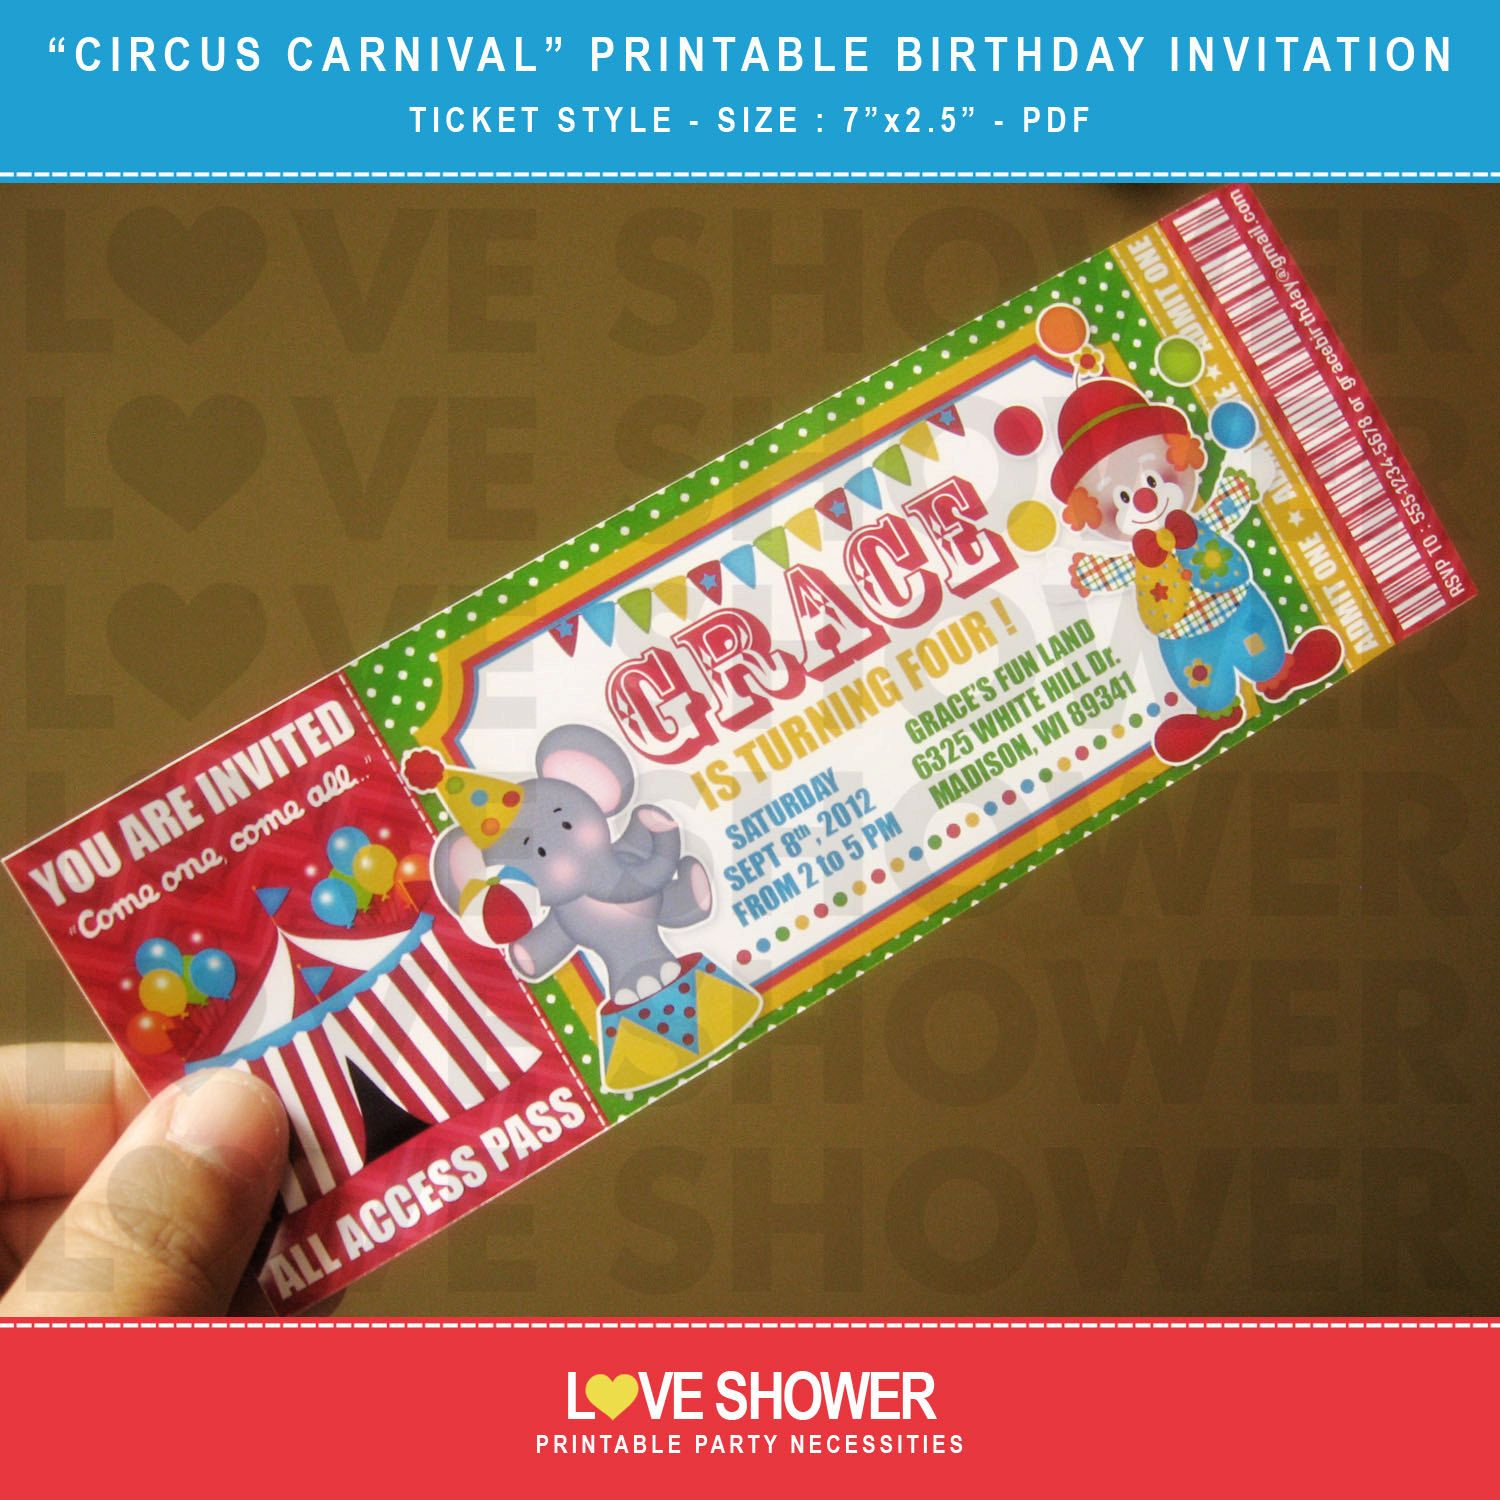 Circus Carnival Printable Birthday Invitation Ticket Style - Birthday invitation cards circus